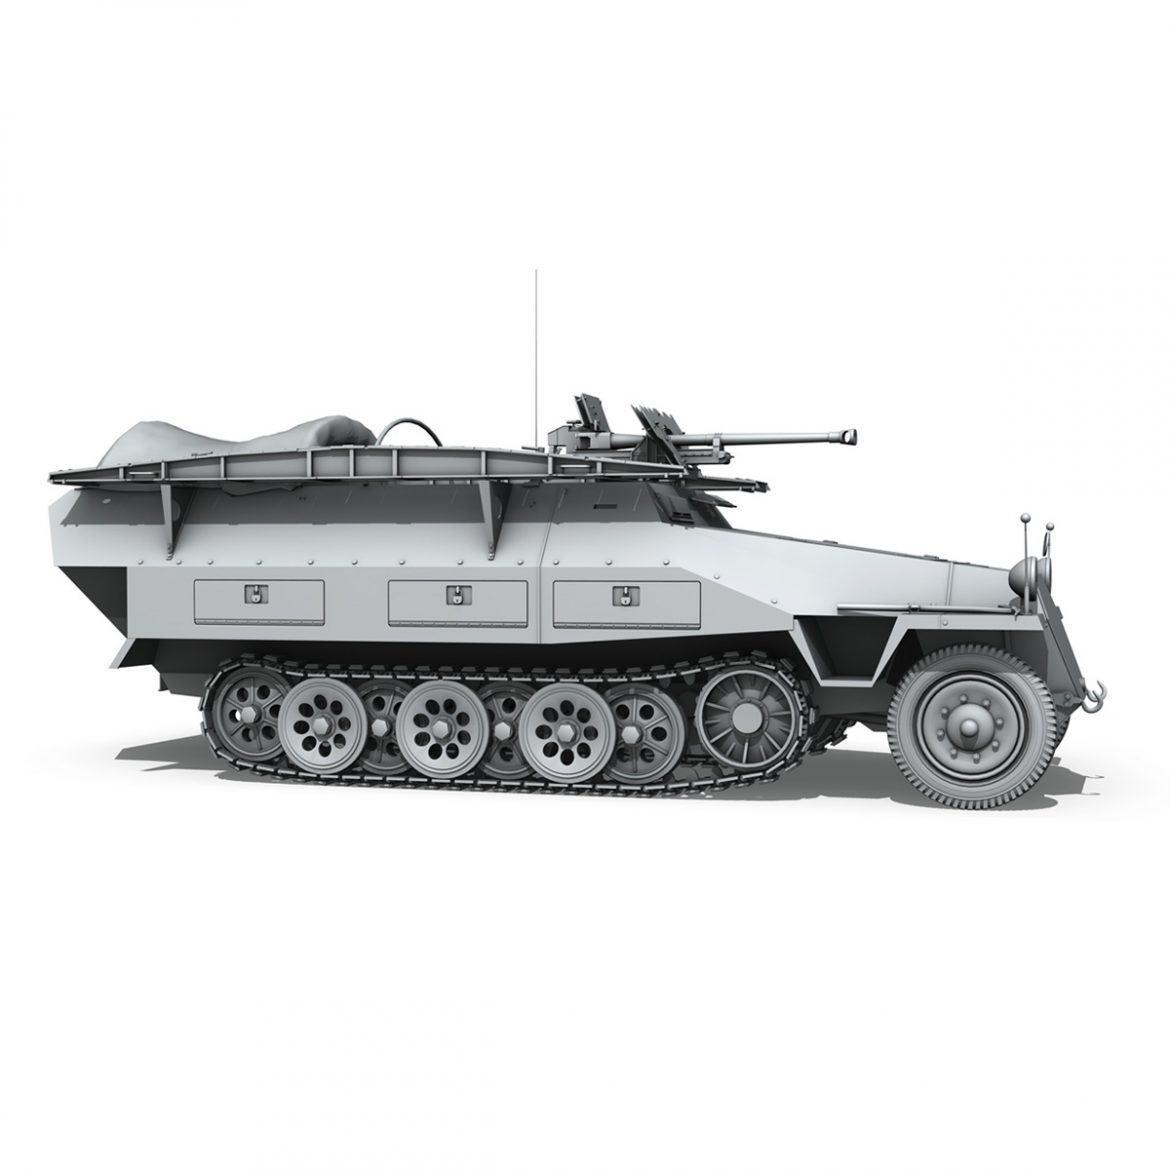 sd.kfz 251/7 ausf.d – assault engineer vehicle 3d model 3ds fbx c4d lwo obj 299578